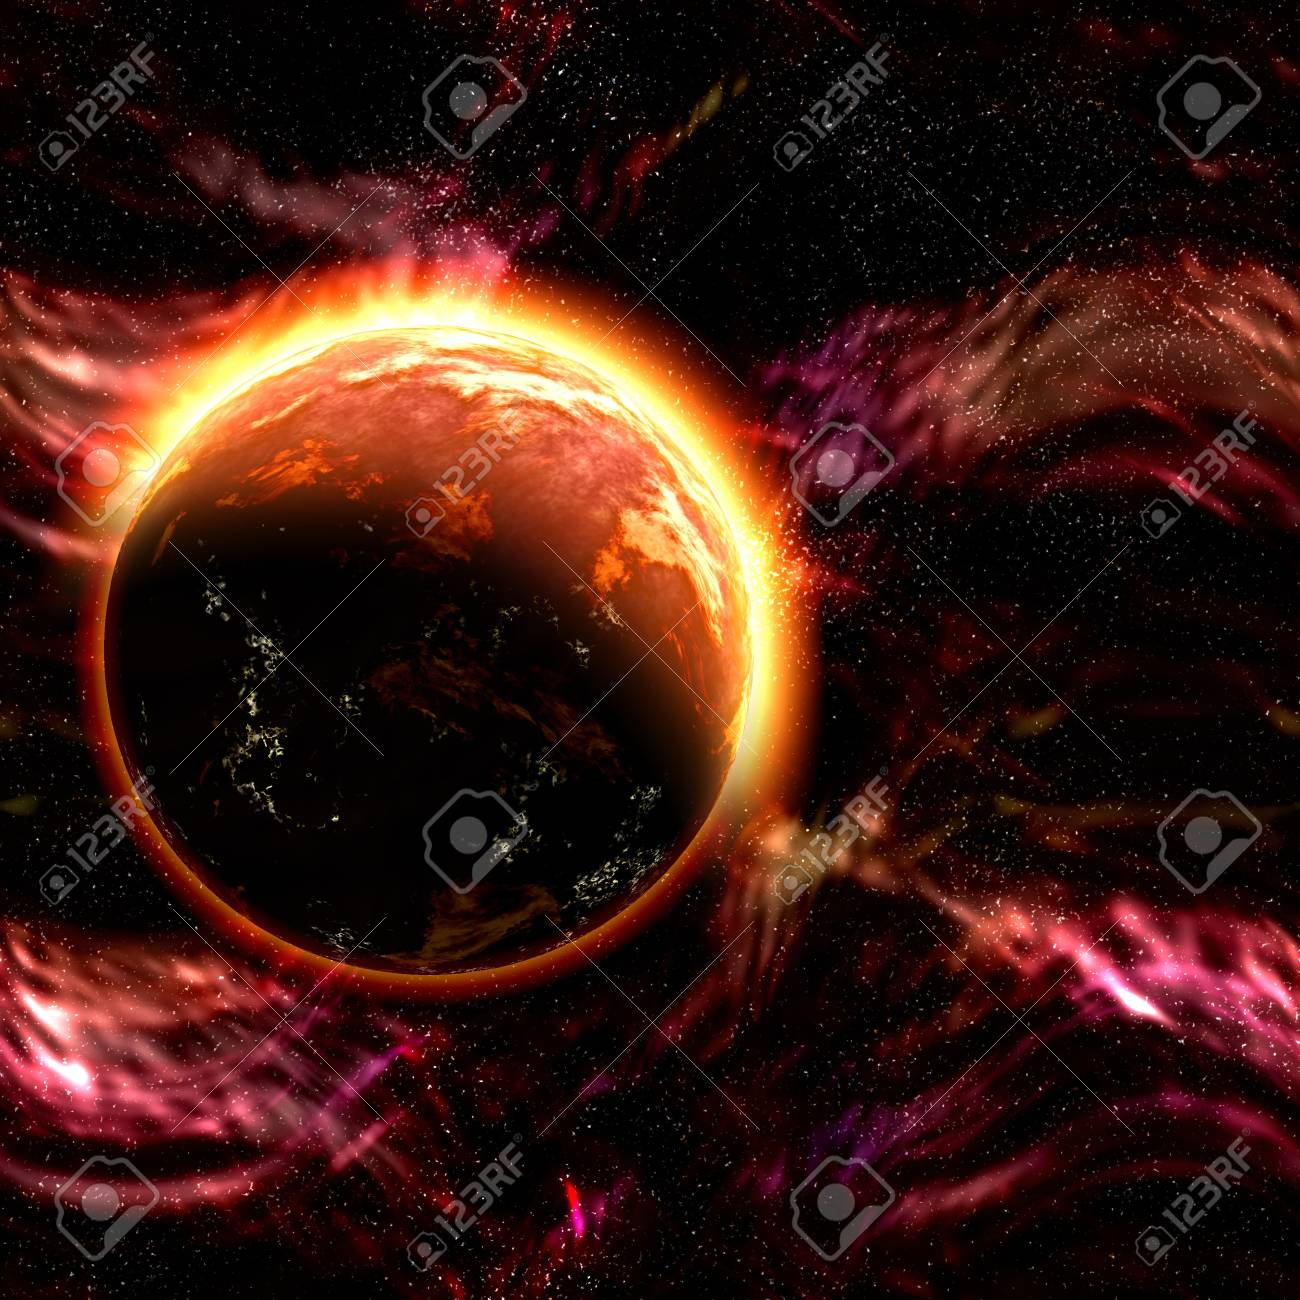 Science fiction cosmic planet complex space scene illustration Stock Photo - 6365398